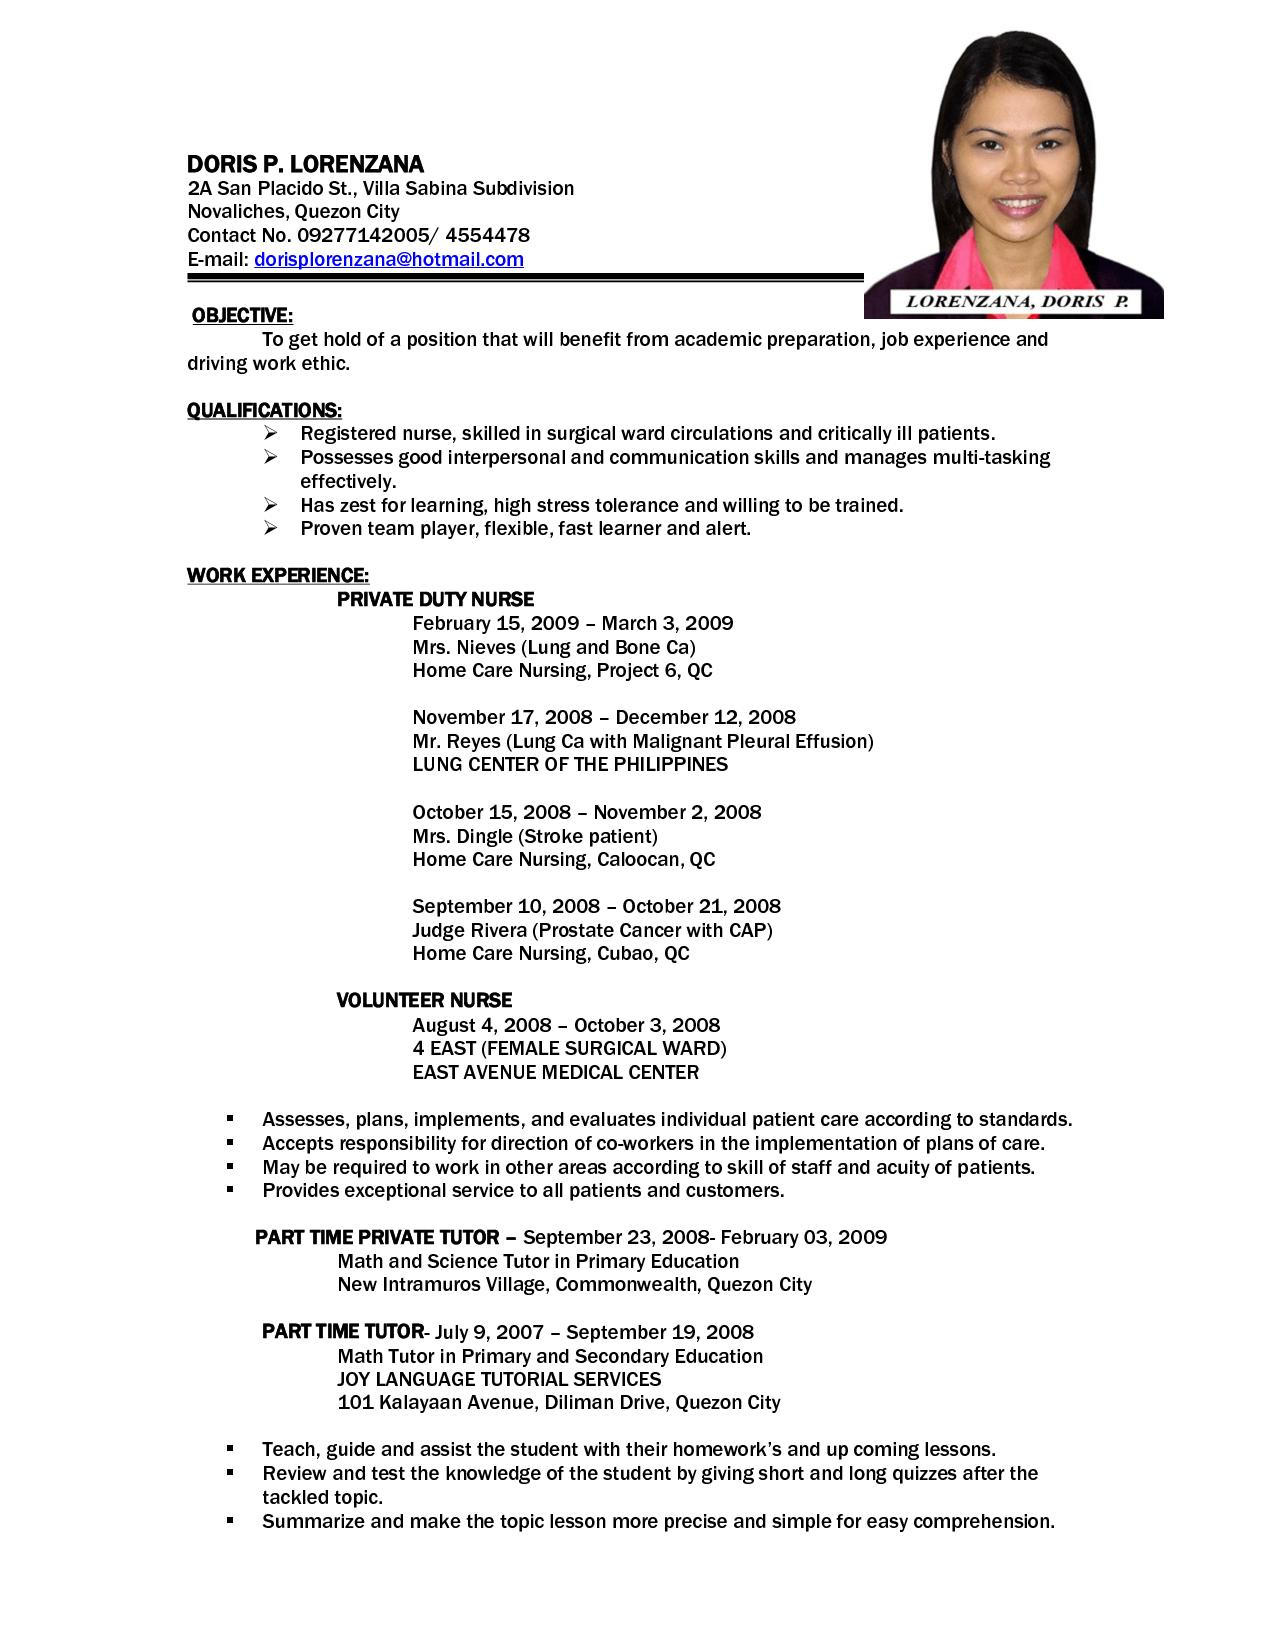 Sample Resume Philippines Format Download